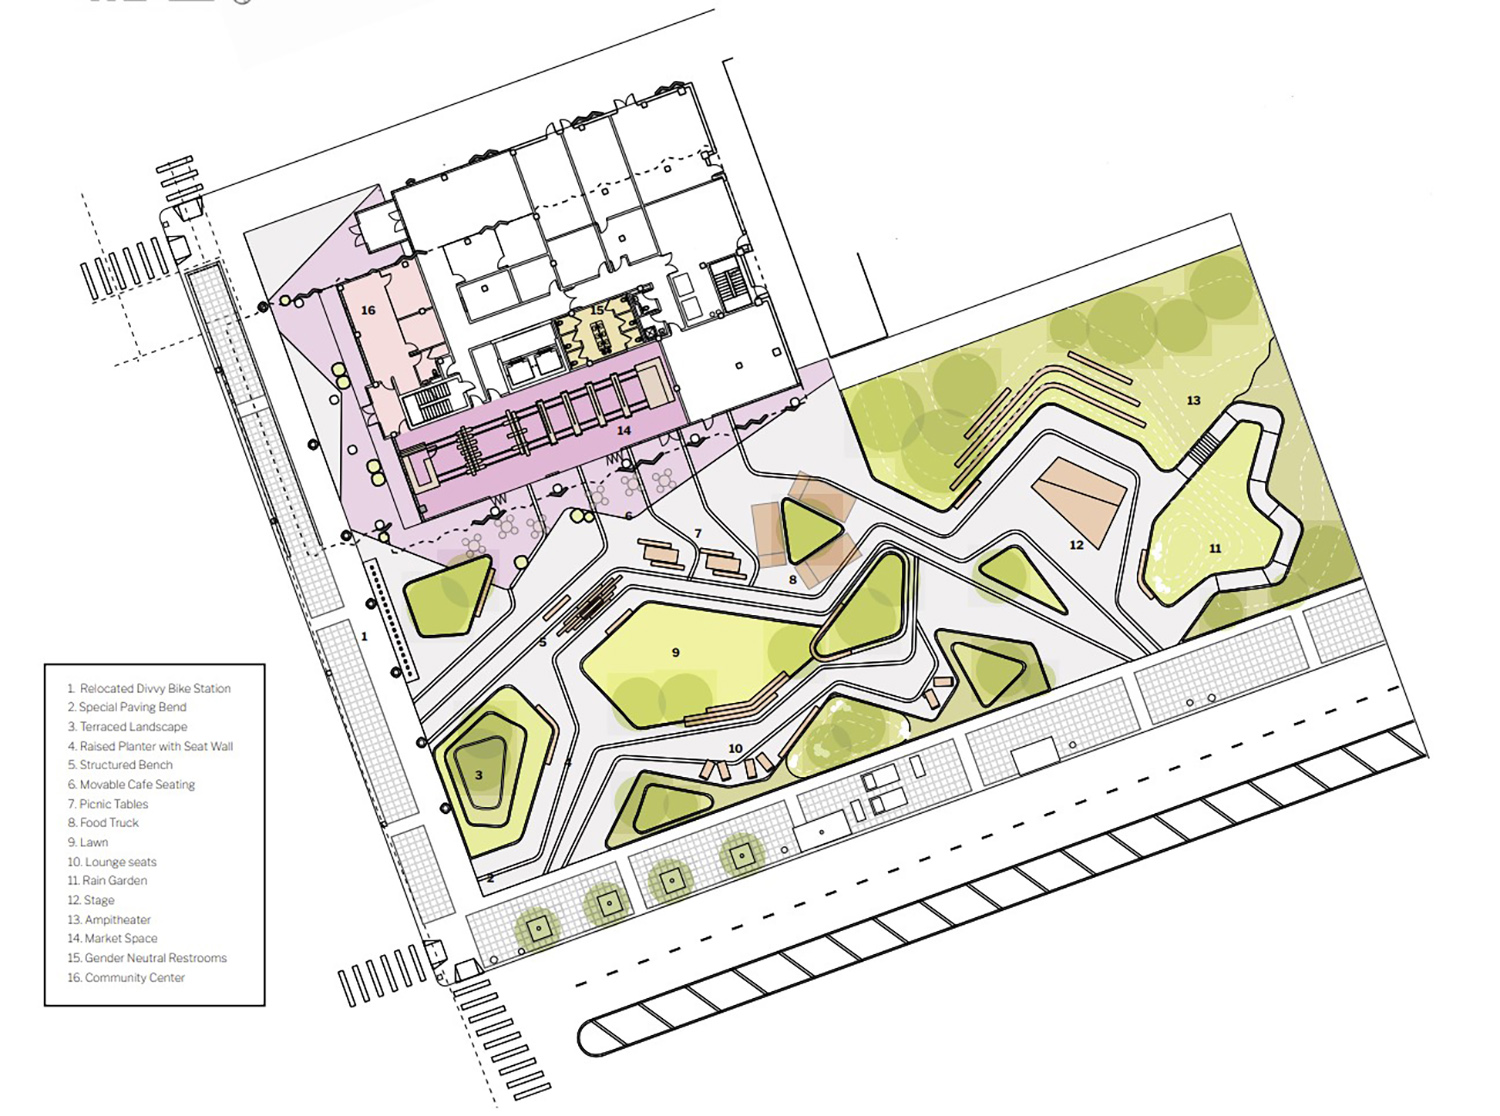 Site Plan for Common Good Collaborative. Drawing by Valerio Dewalt Train